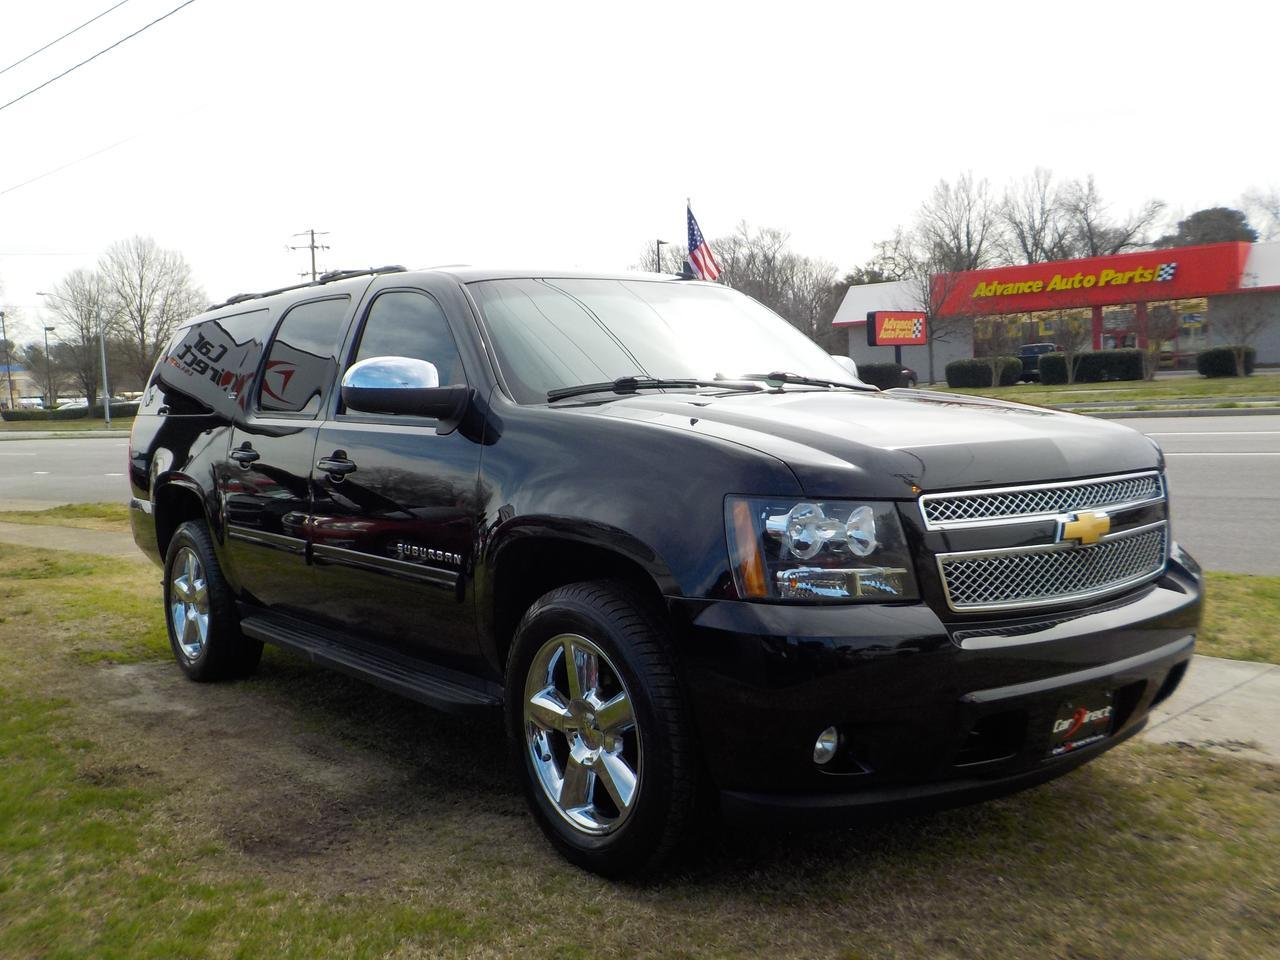 2012 CHEVROLET SUBURBAN LTZ 4X4, WARRANTY, BOSE SOUND SYSTEM, REMOTE START, ROOF RACKS, RUNNING BOARDS, TOW, 3RD ROW, ONSTAR Virginia Beach VA